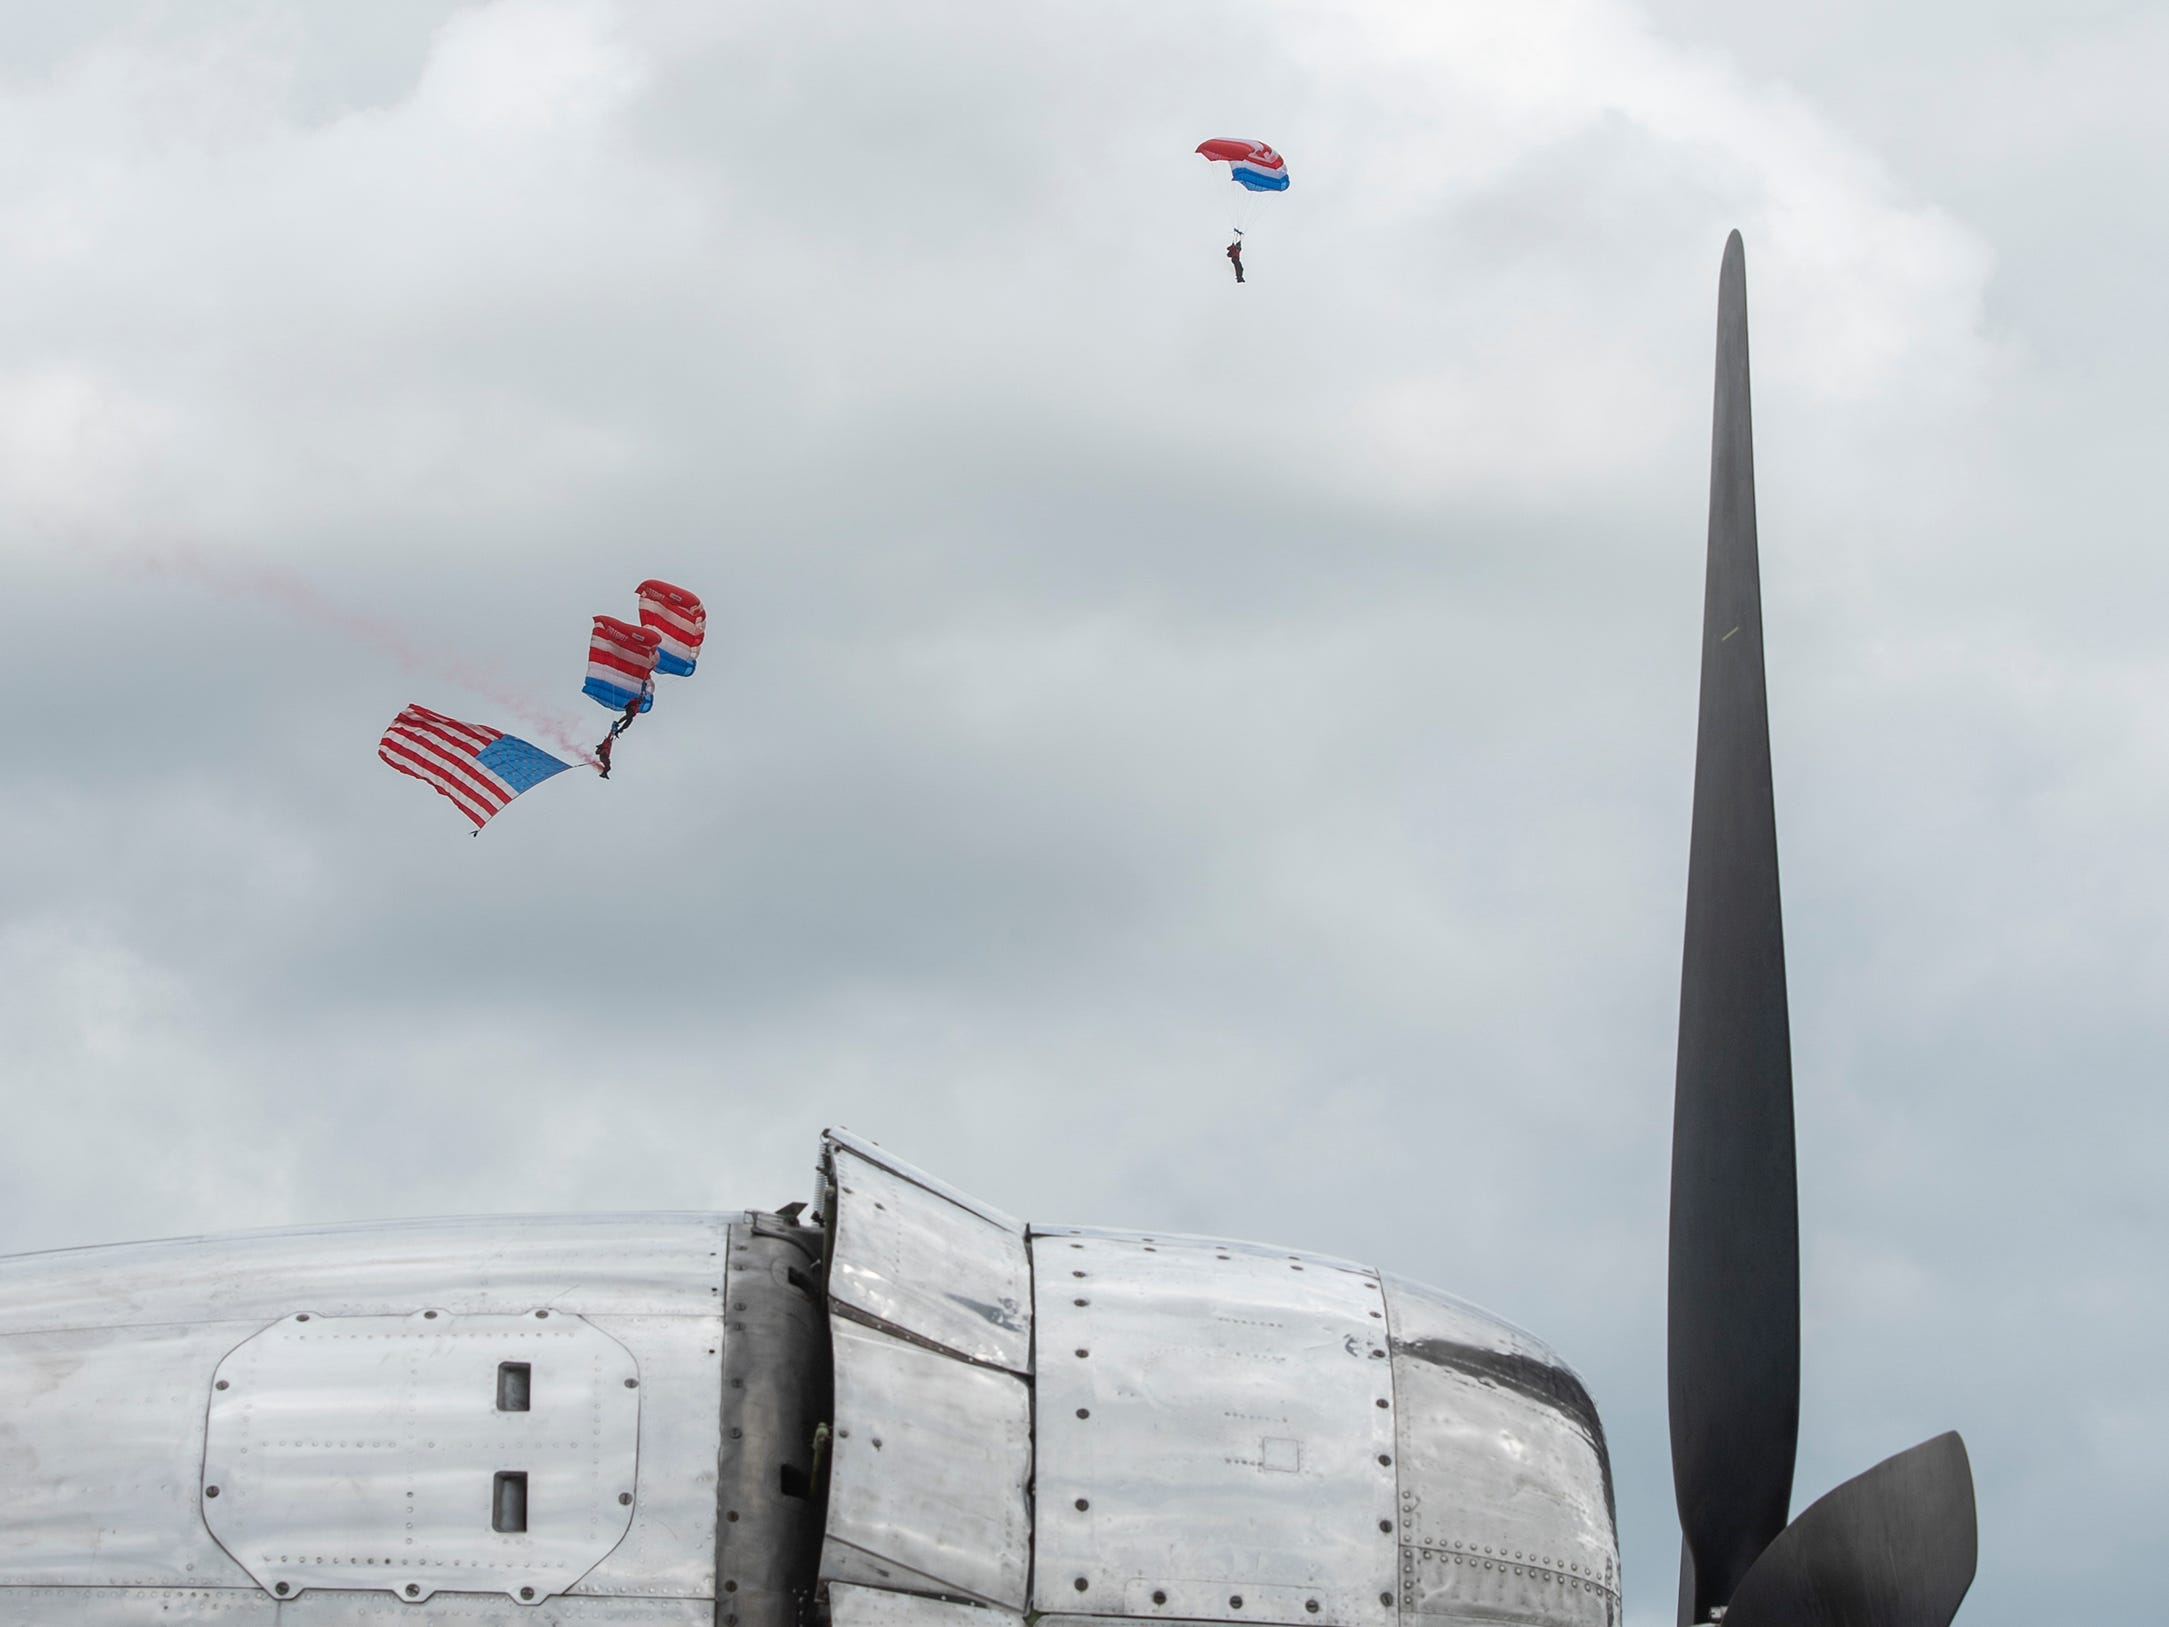 Skydivers float to the ground with an American flag to signify the beginning of the afternoon airshow as seen behind a Boeing B-29 parked in Boeing Plaza at AirVenture in Oshkosh, Wis., on Thursday, July 26, 2018.